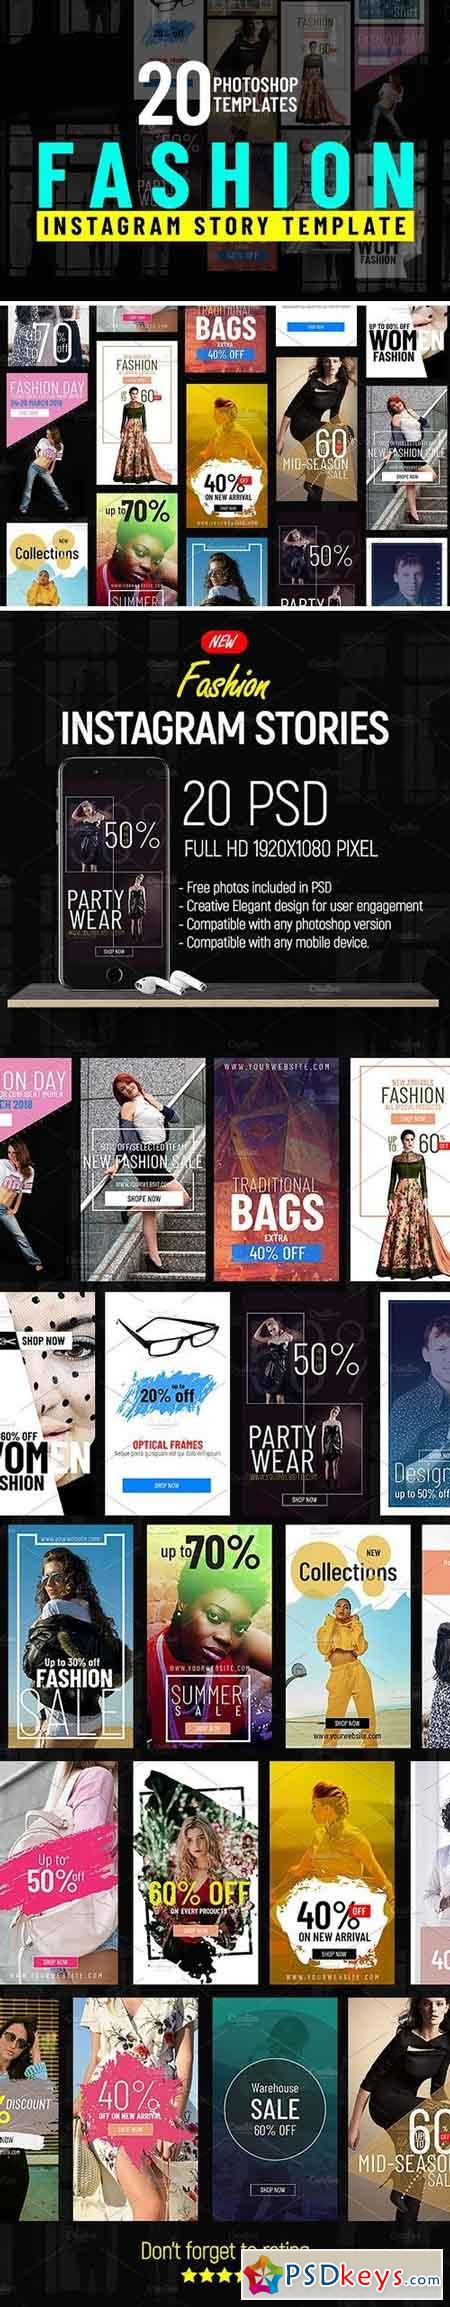 Fashion Shopping Instagram Stories 2385787 » Free Download Photoshop